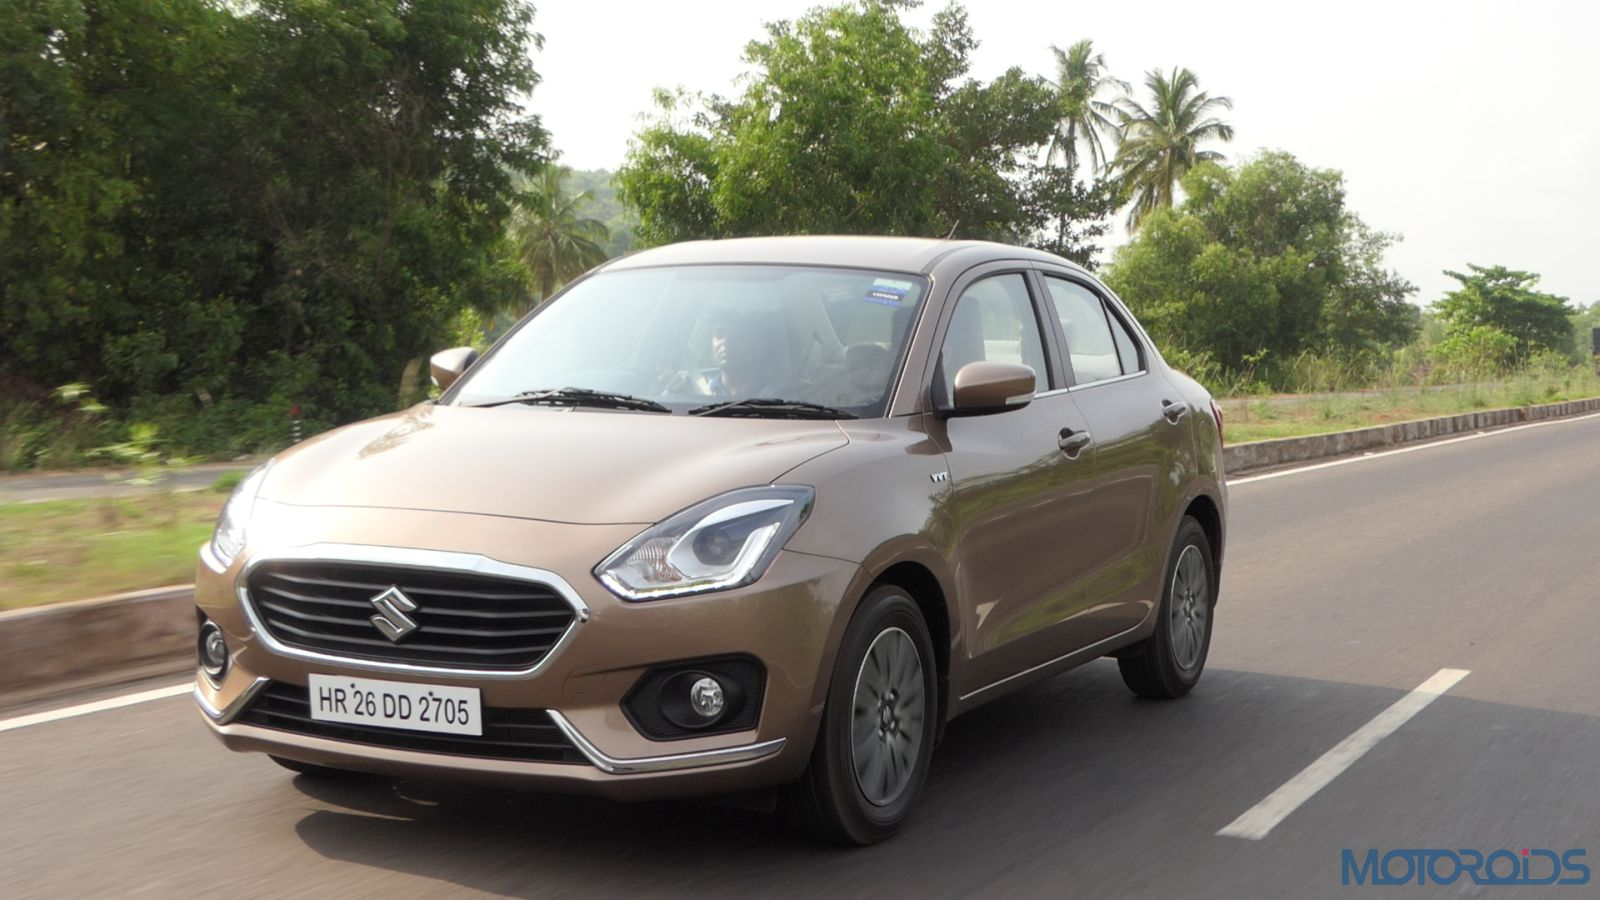 New Maruti Suzuki Dzire India Review Price Specs